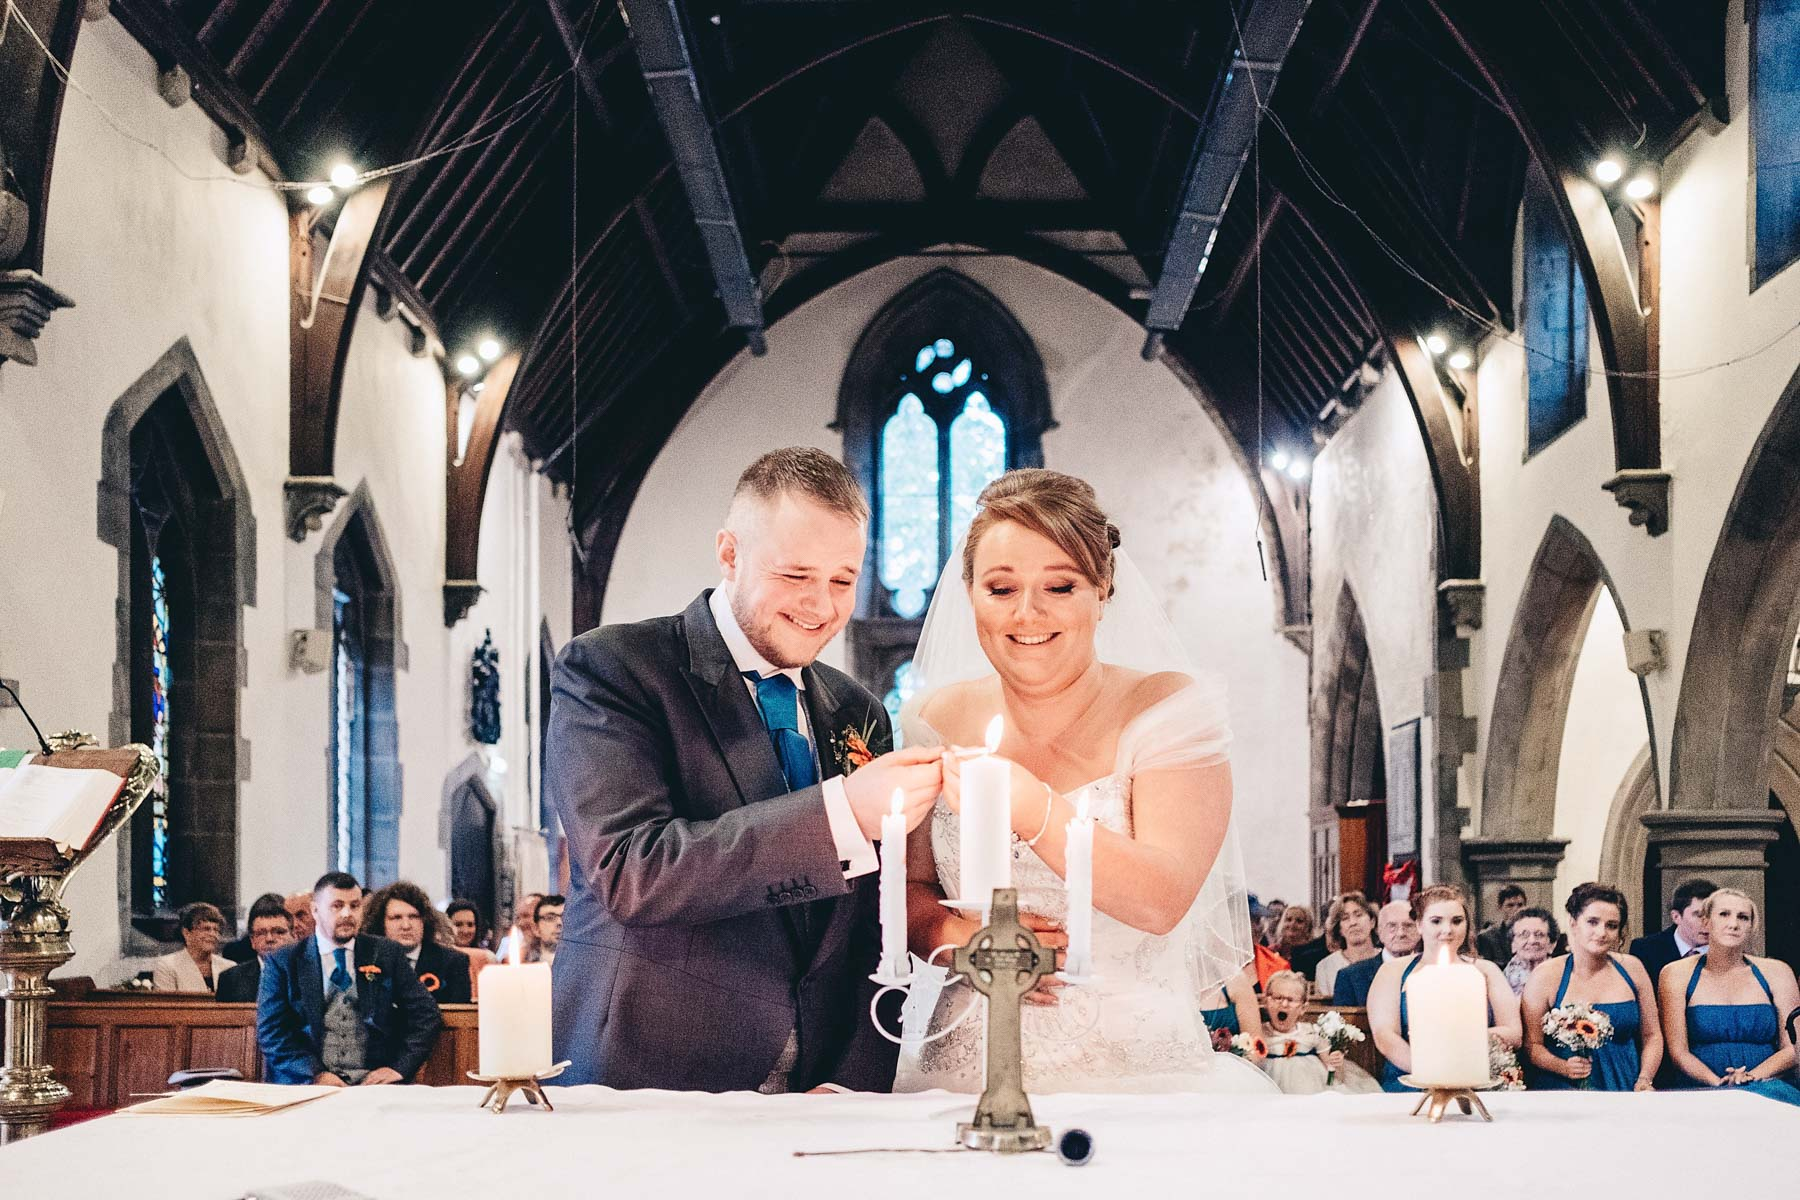 Bride and groom laugh as they light a candle in church